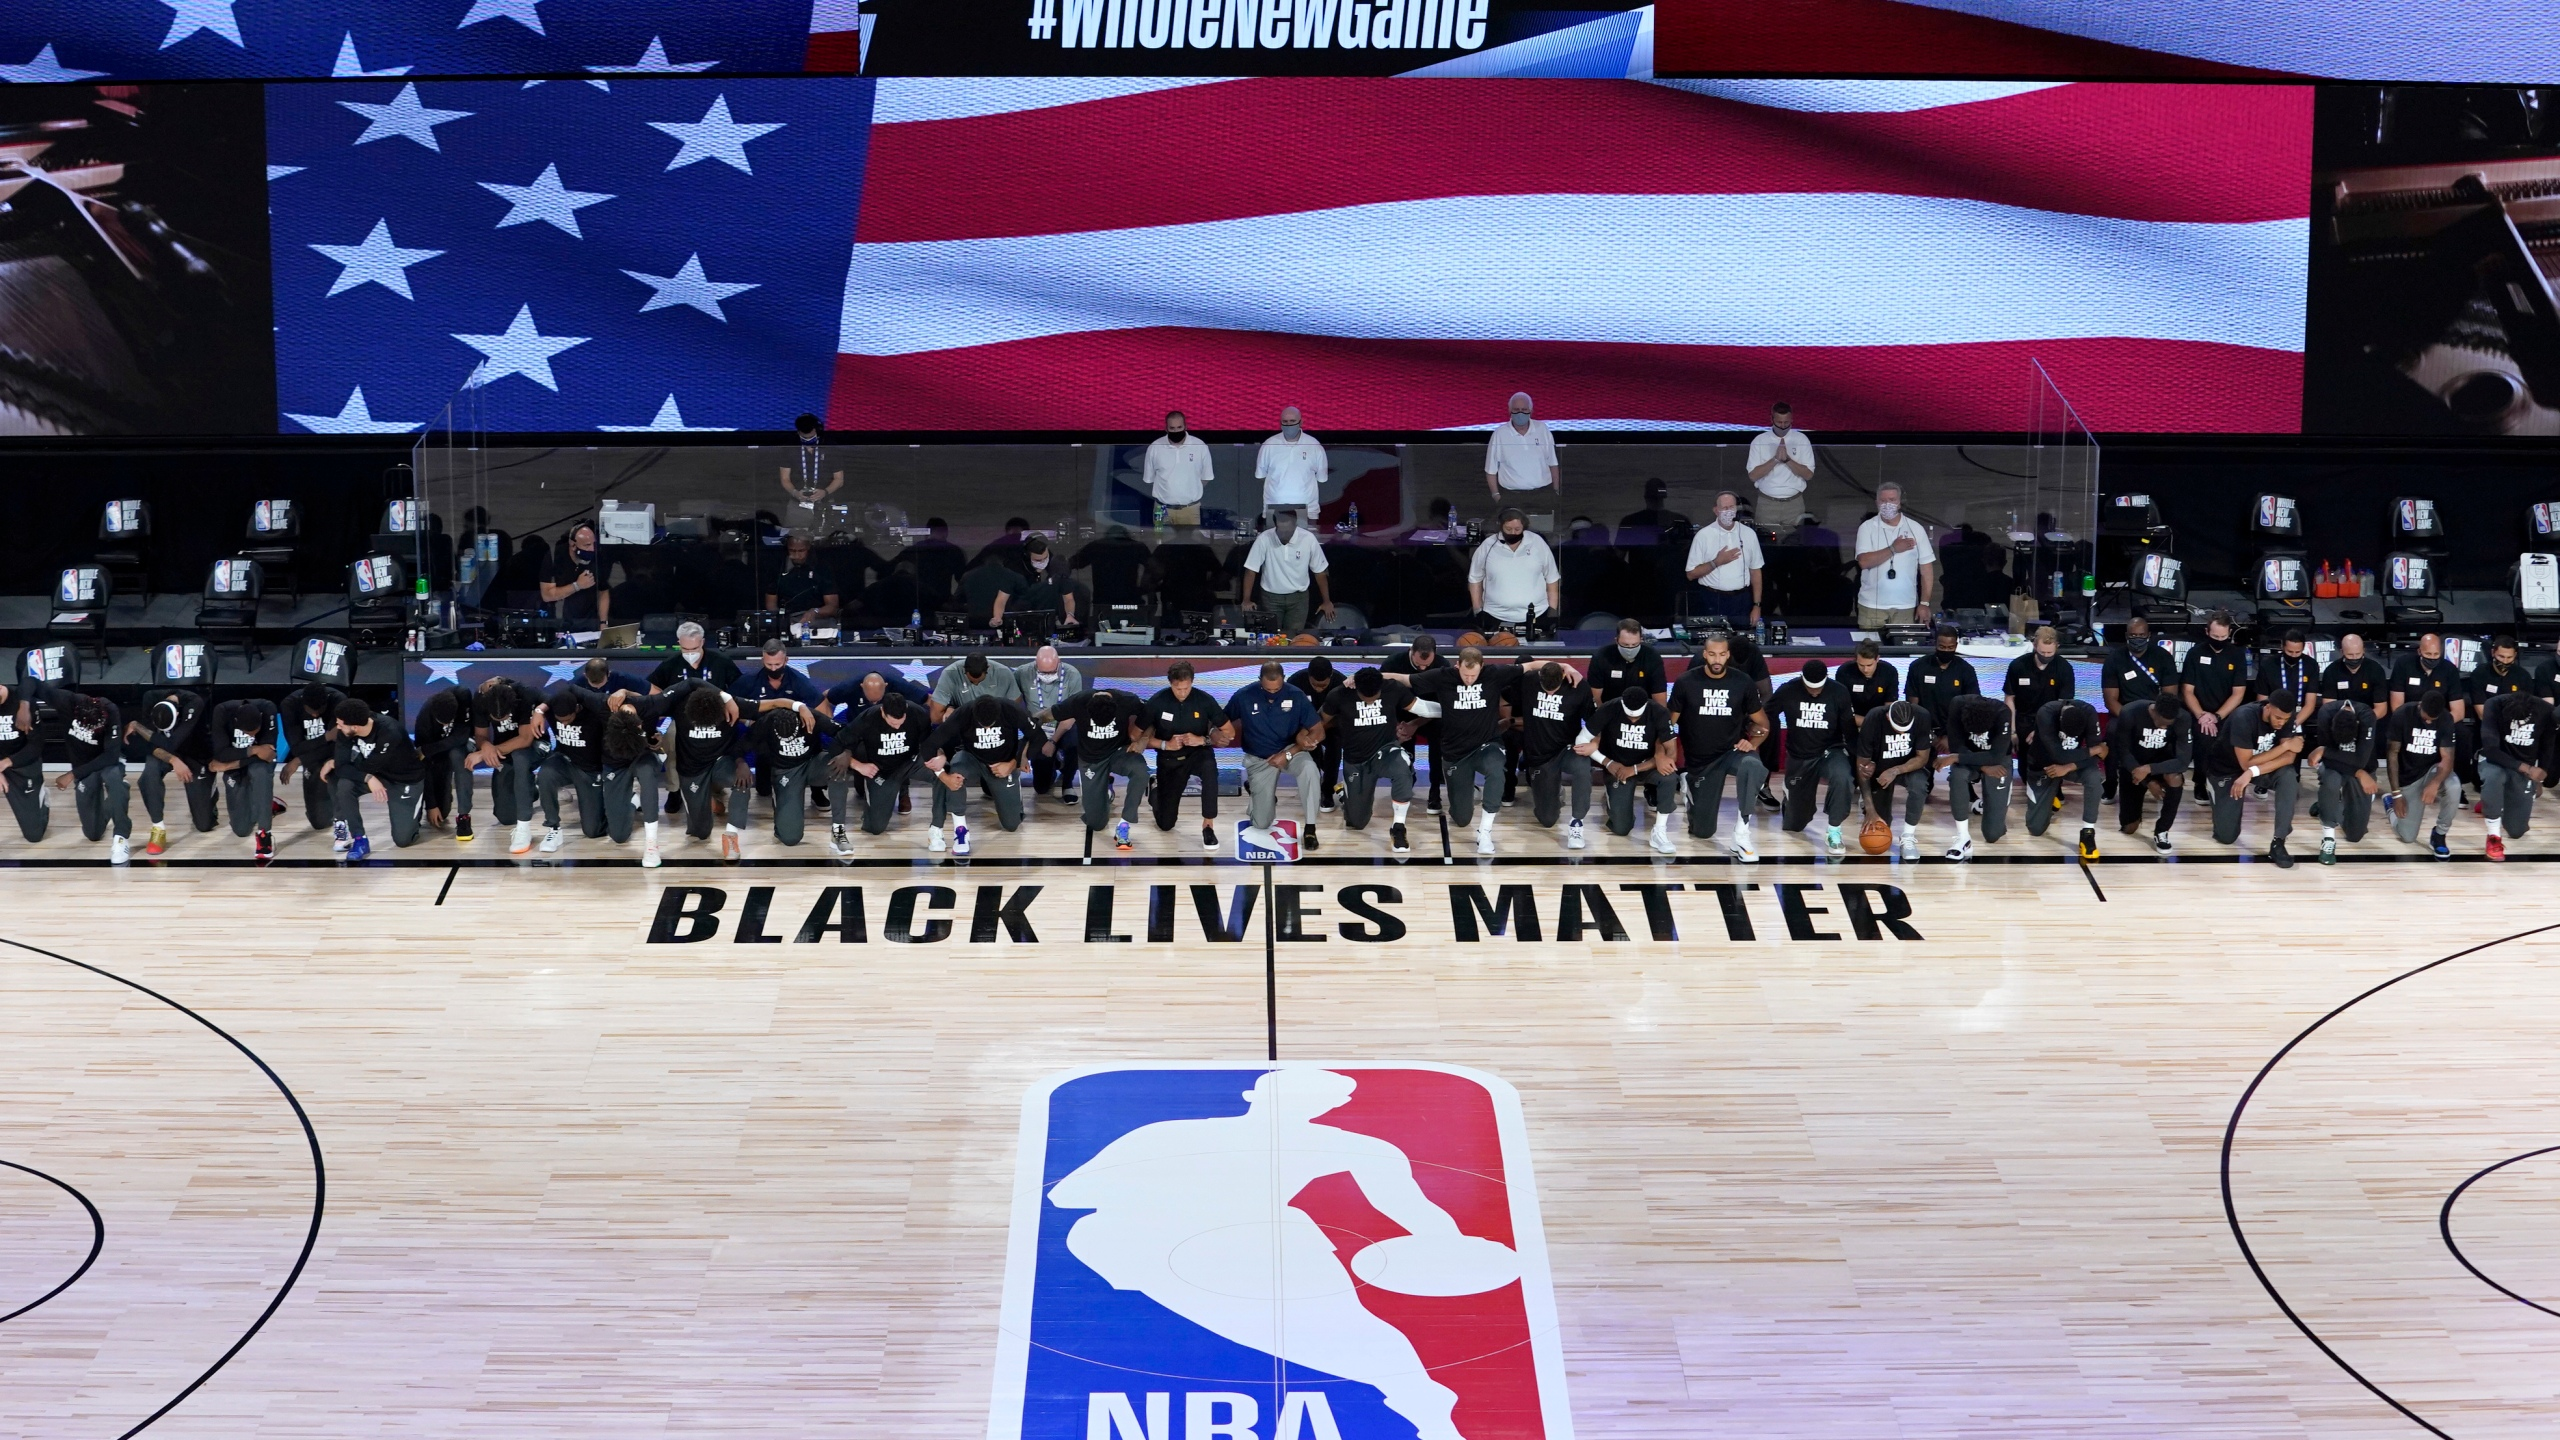 Members of the New Orleans Pelicans and Utah Jazz kneel together around the Black Lives Matter logo on the court during the national anthem before the start of an NBA basketball game on July 30, 2020, in Lake Buena Vista, Fla. (AP Photo/Ashley Landis, Pool)